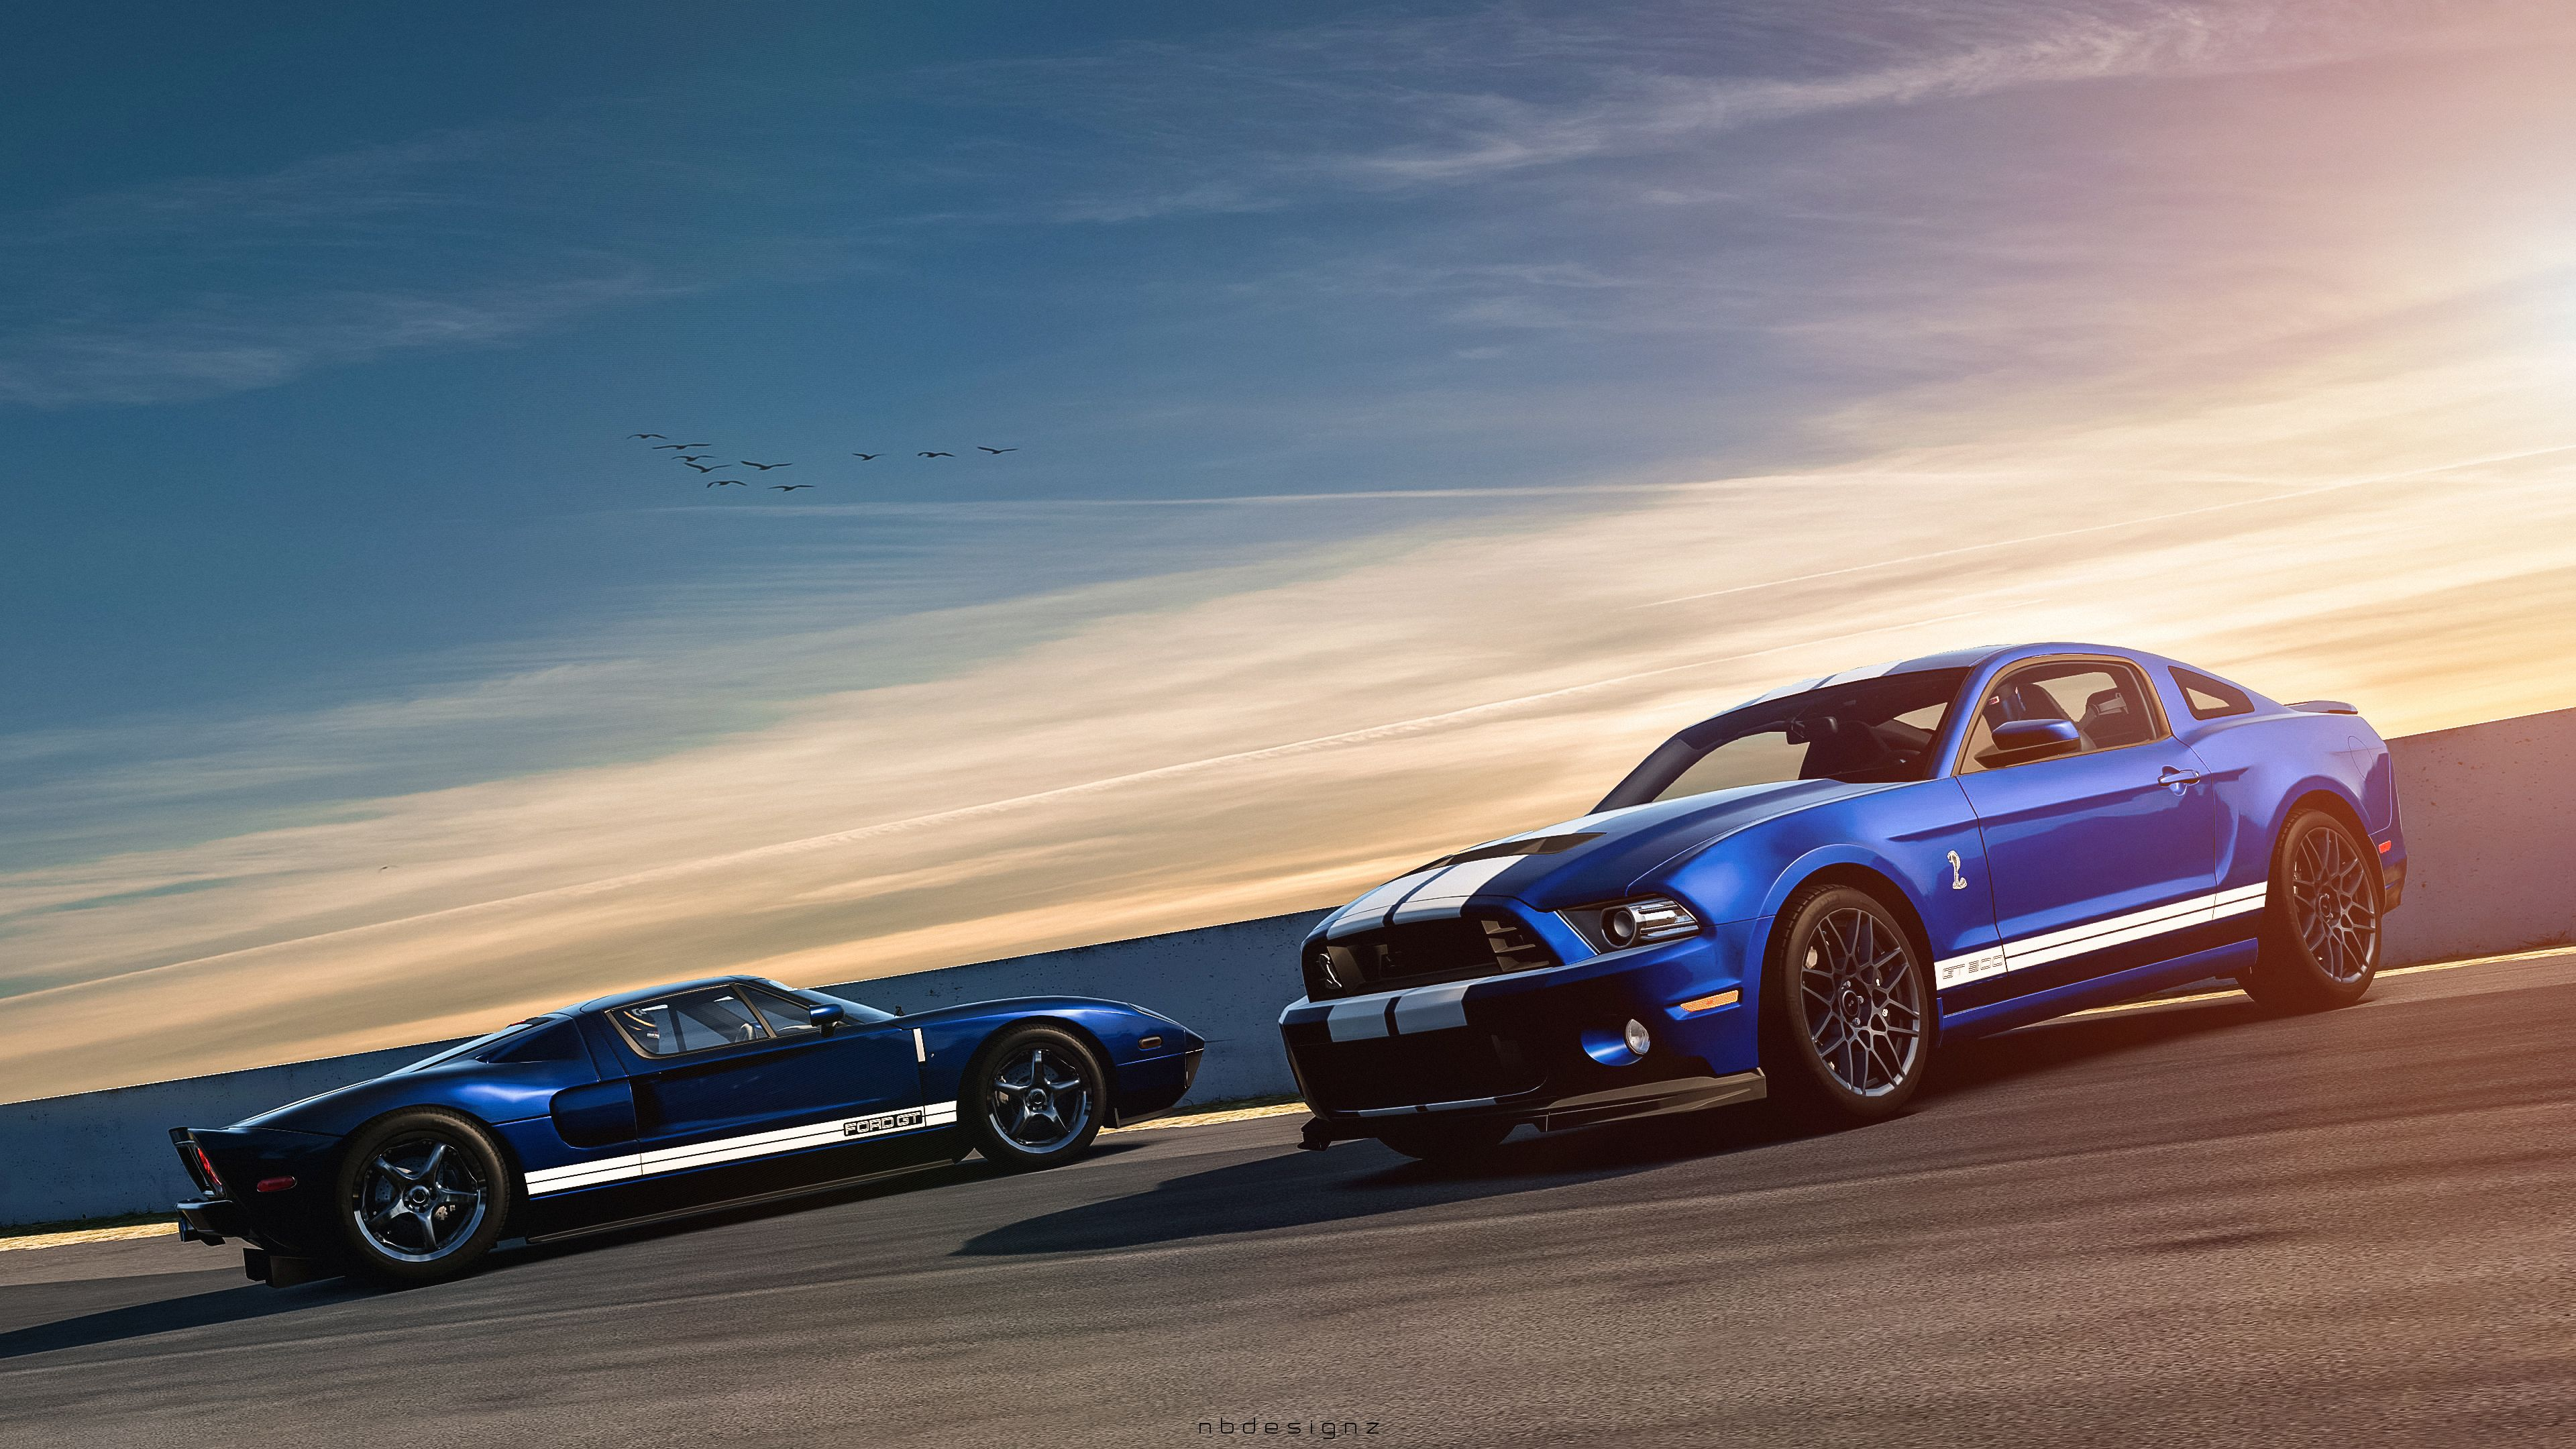 Ford Mustang Gt Muscle Car Blue Sports Cars  E  A X Bros Apparel Vintage Motor T Shirts Mustangs  E  A Great Price